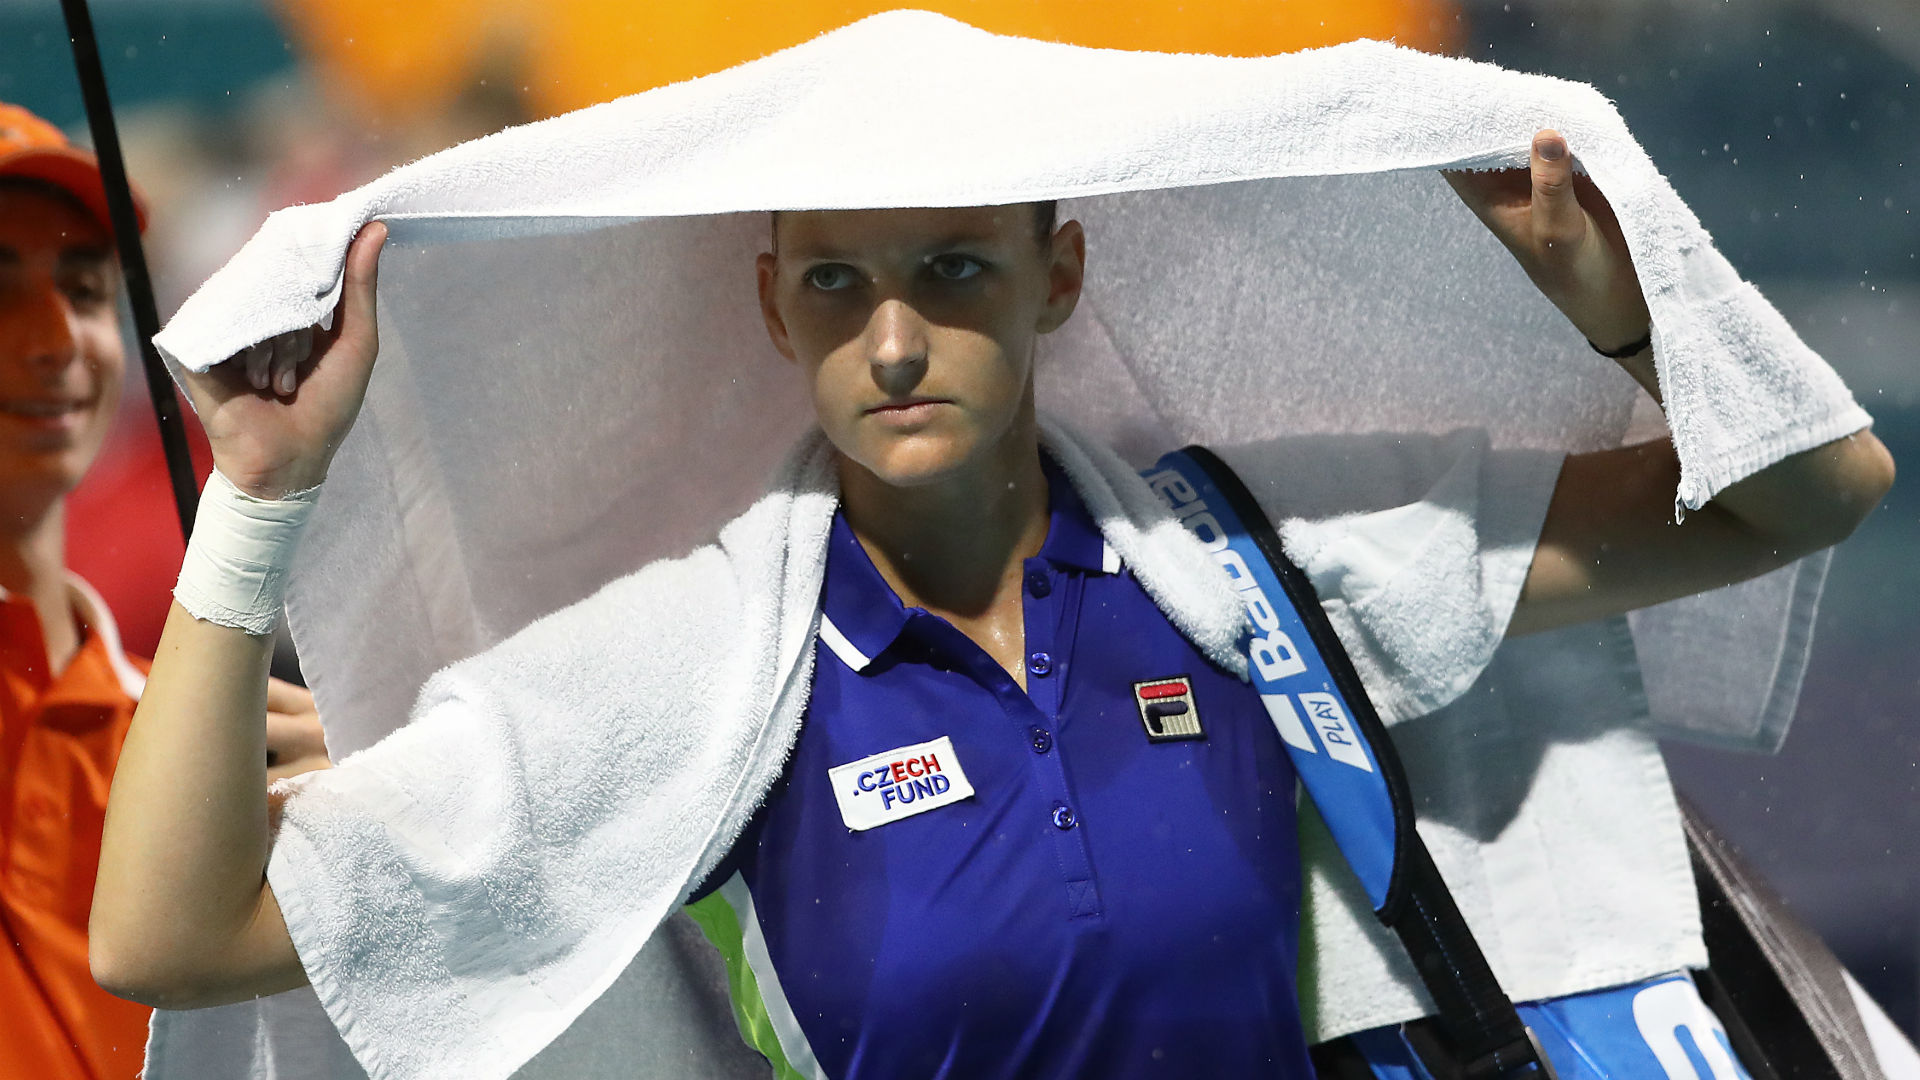 Rain intervened to bring Karolina Pliskova's last-16 clash with Polona Hercog to a halt, with the top-seeded Czech facing a tough battle.